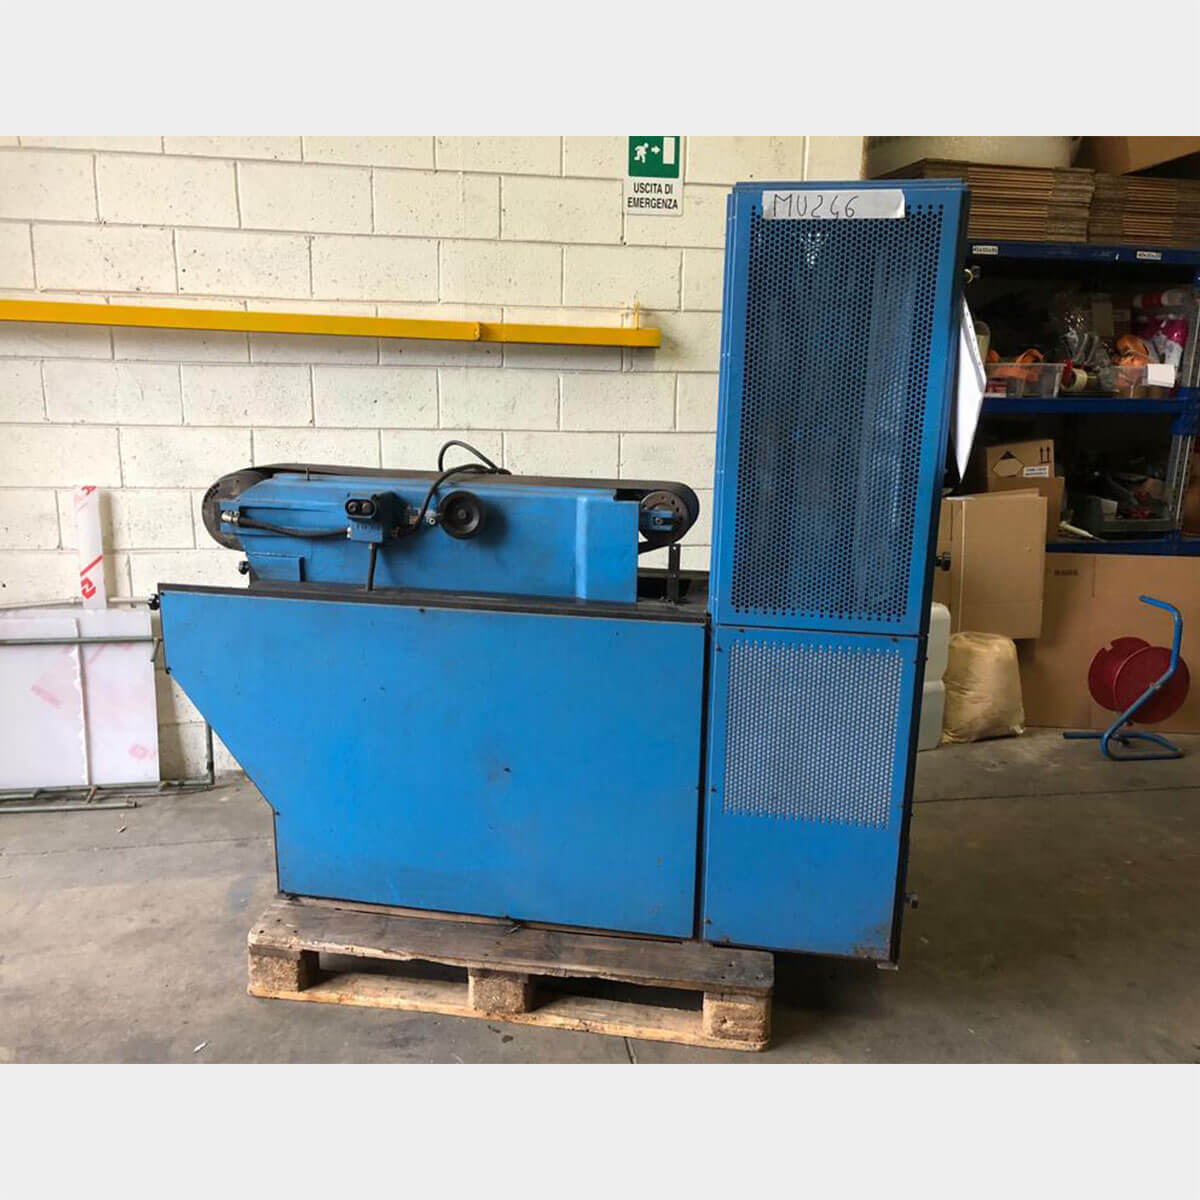 MU246 IPERCO Used Belt Resurfacing Machine